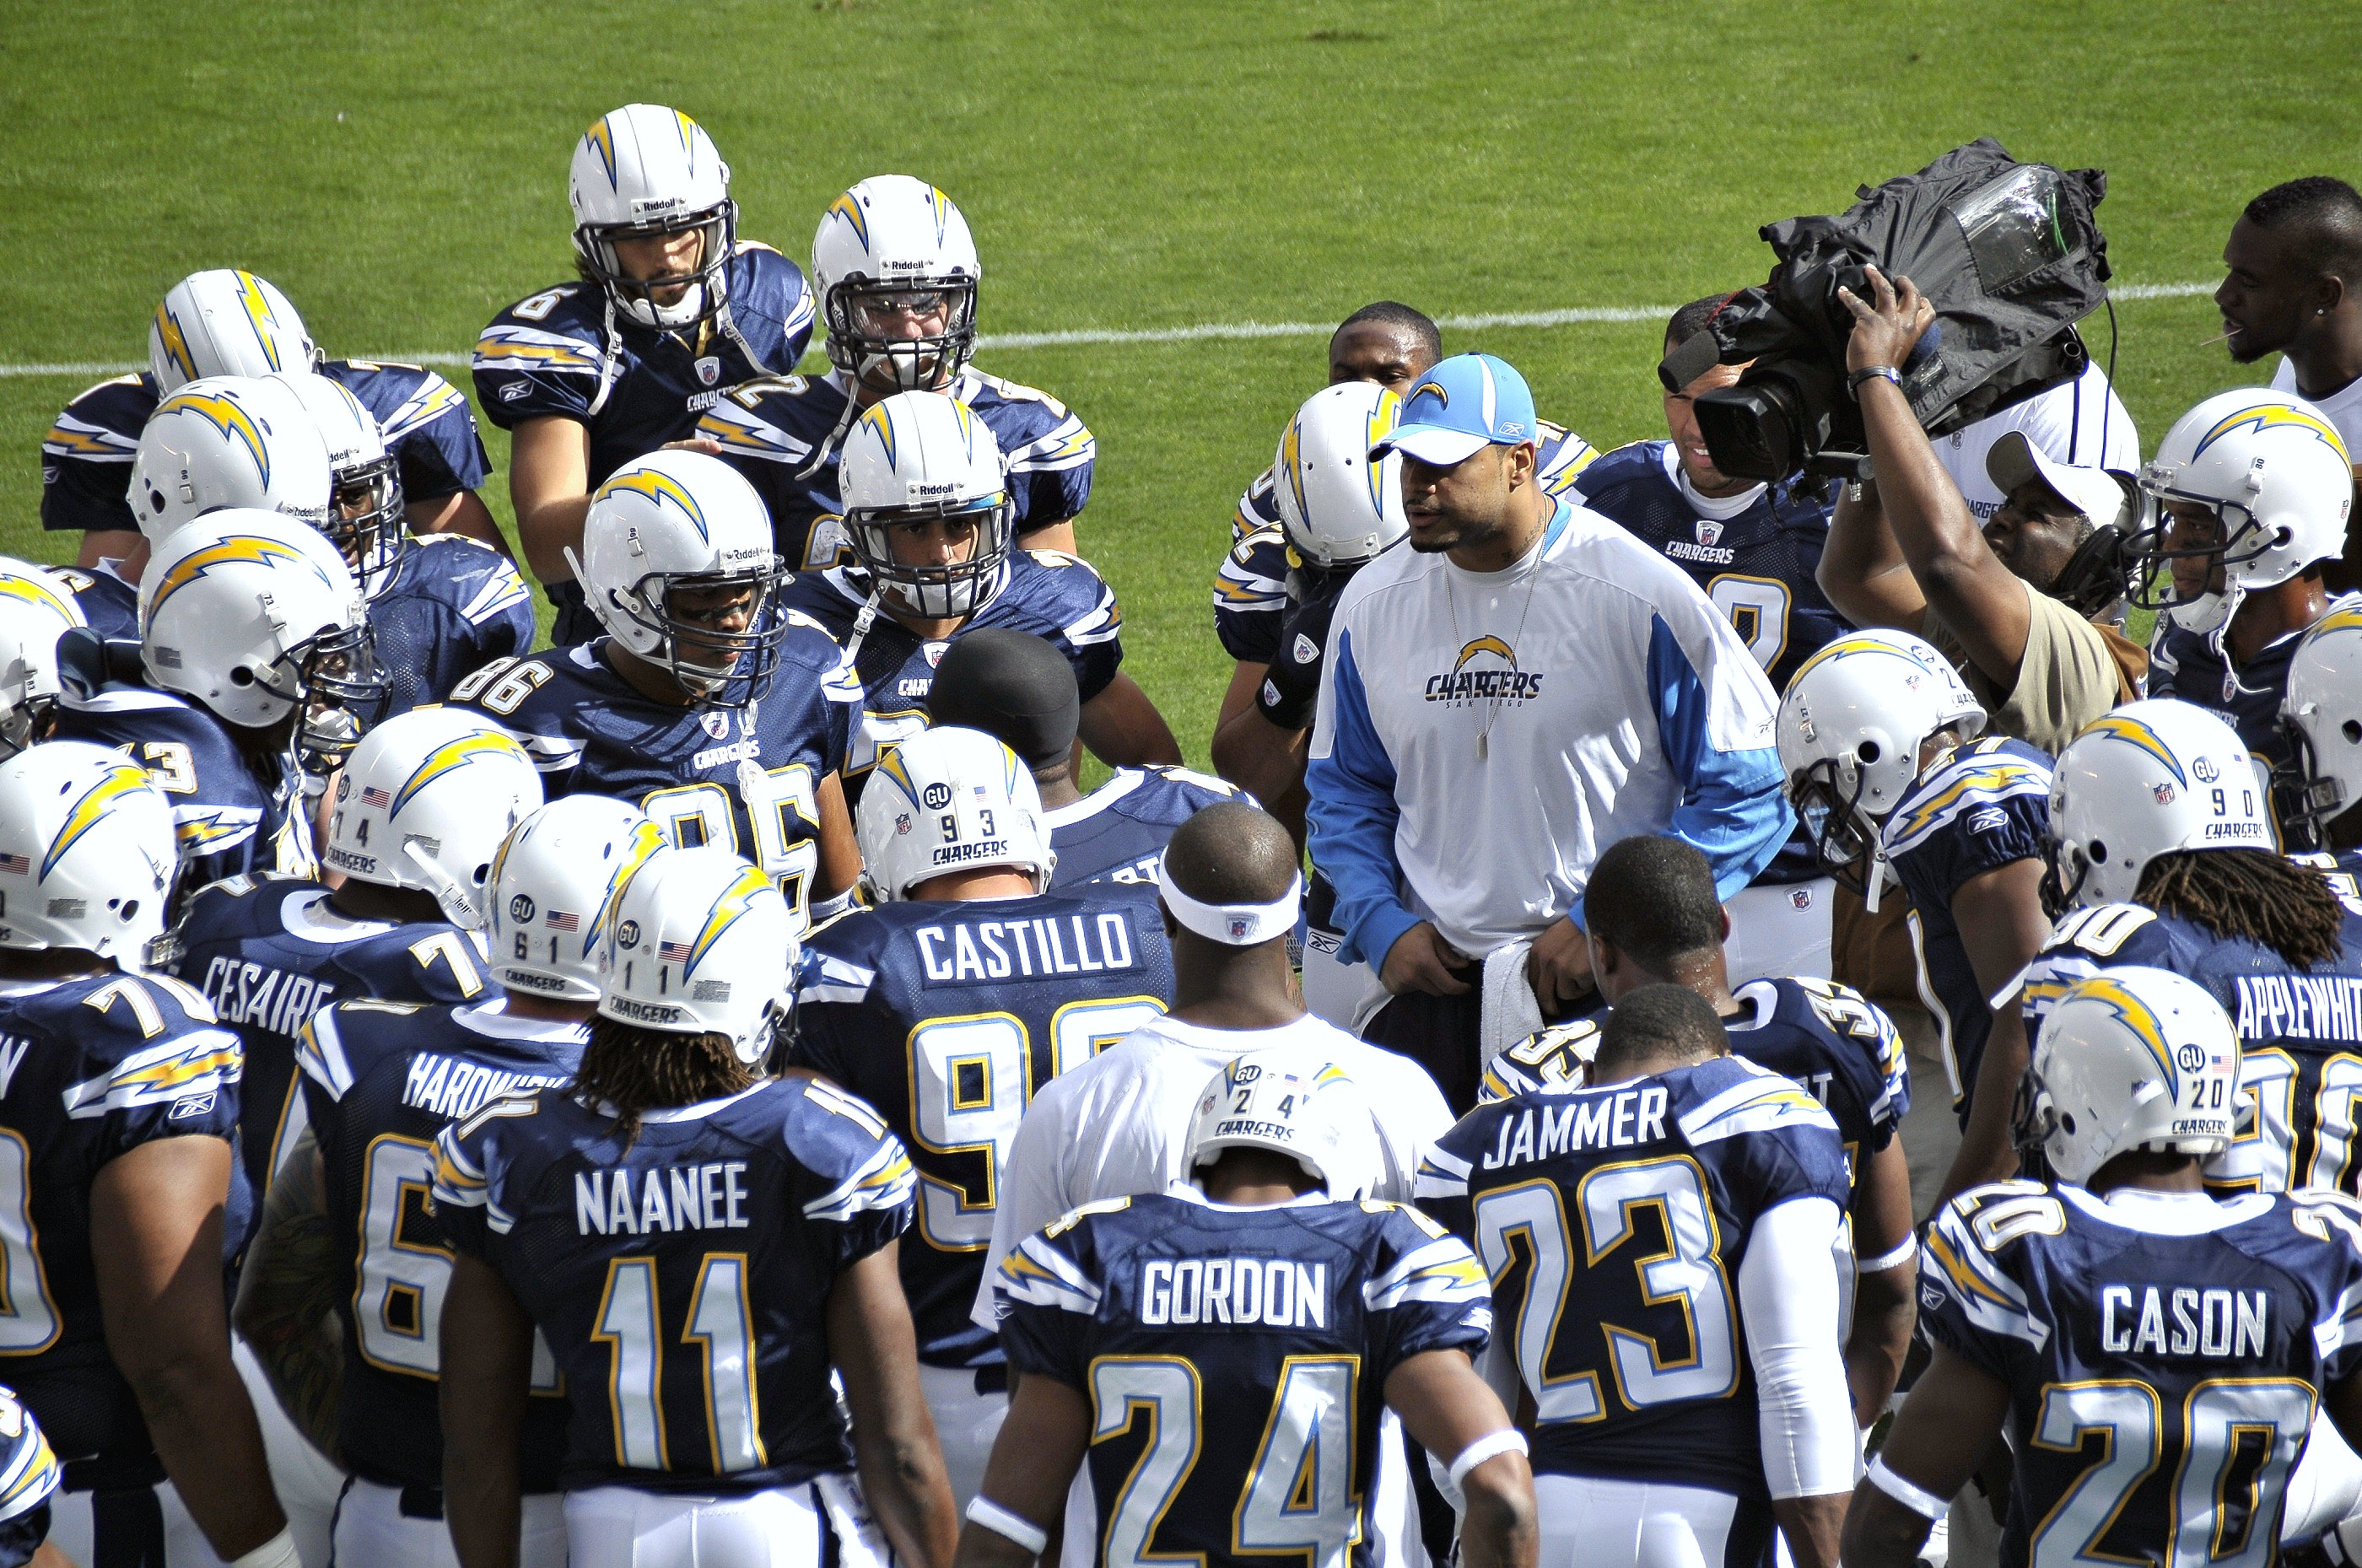 Chargers. Foto: Chargers/Wikimedia